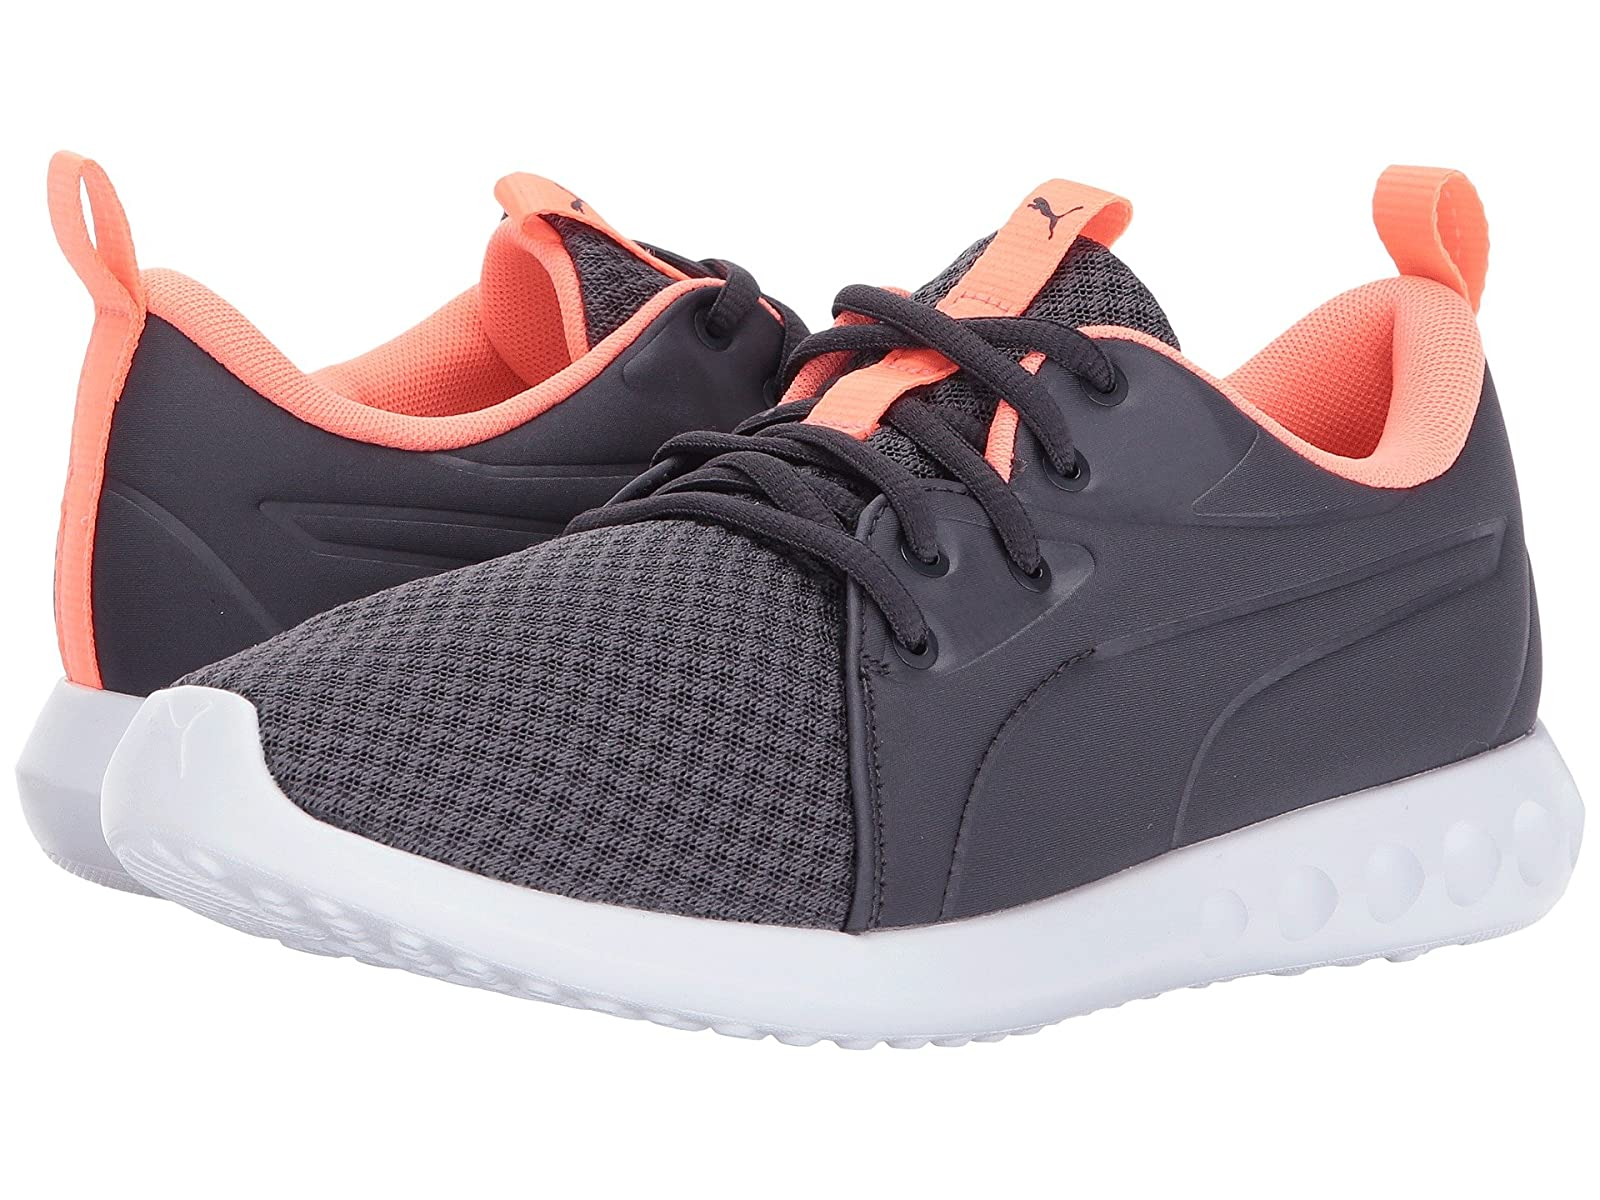 PUMA Carson 2 MoldedCheap and distinctive eye-catching shoes